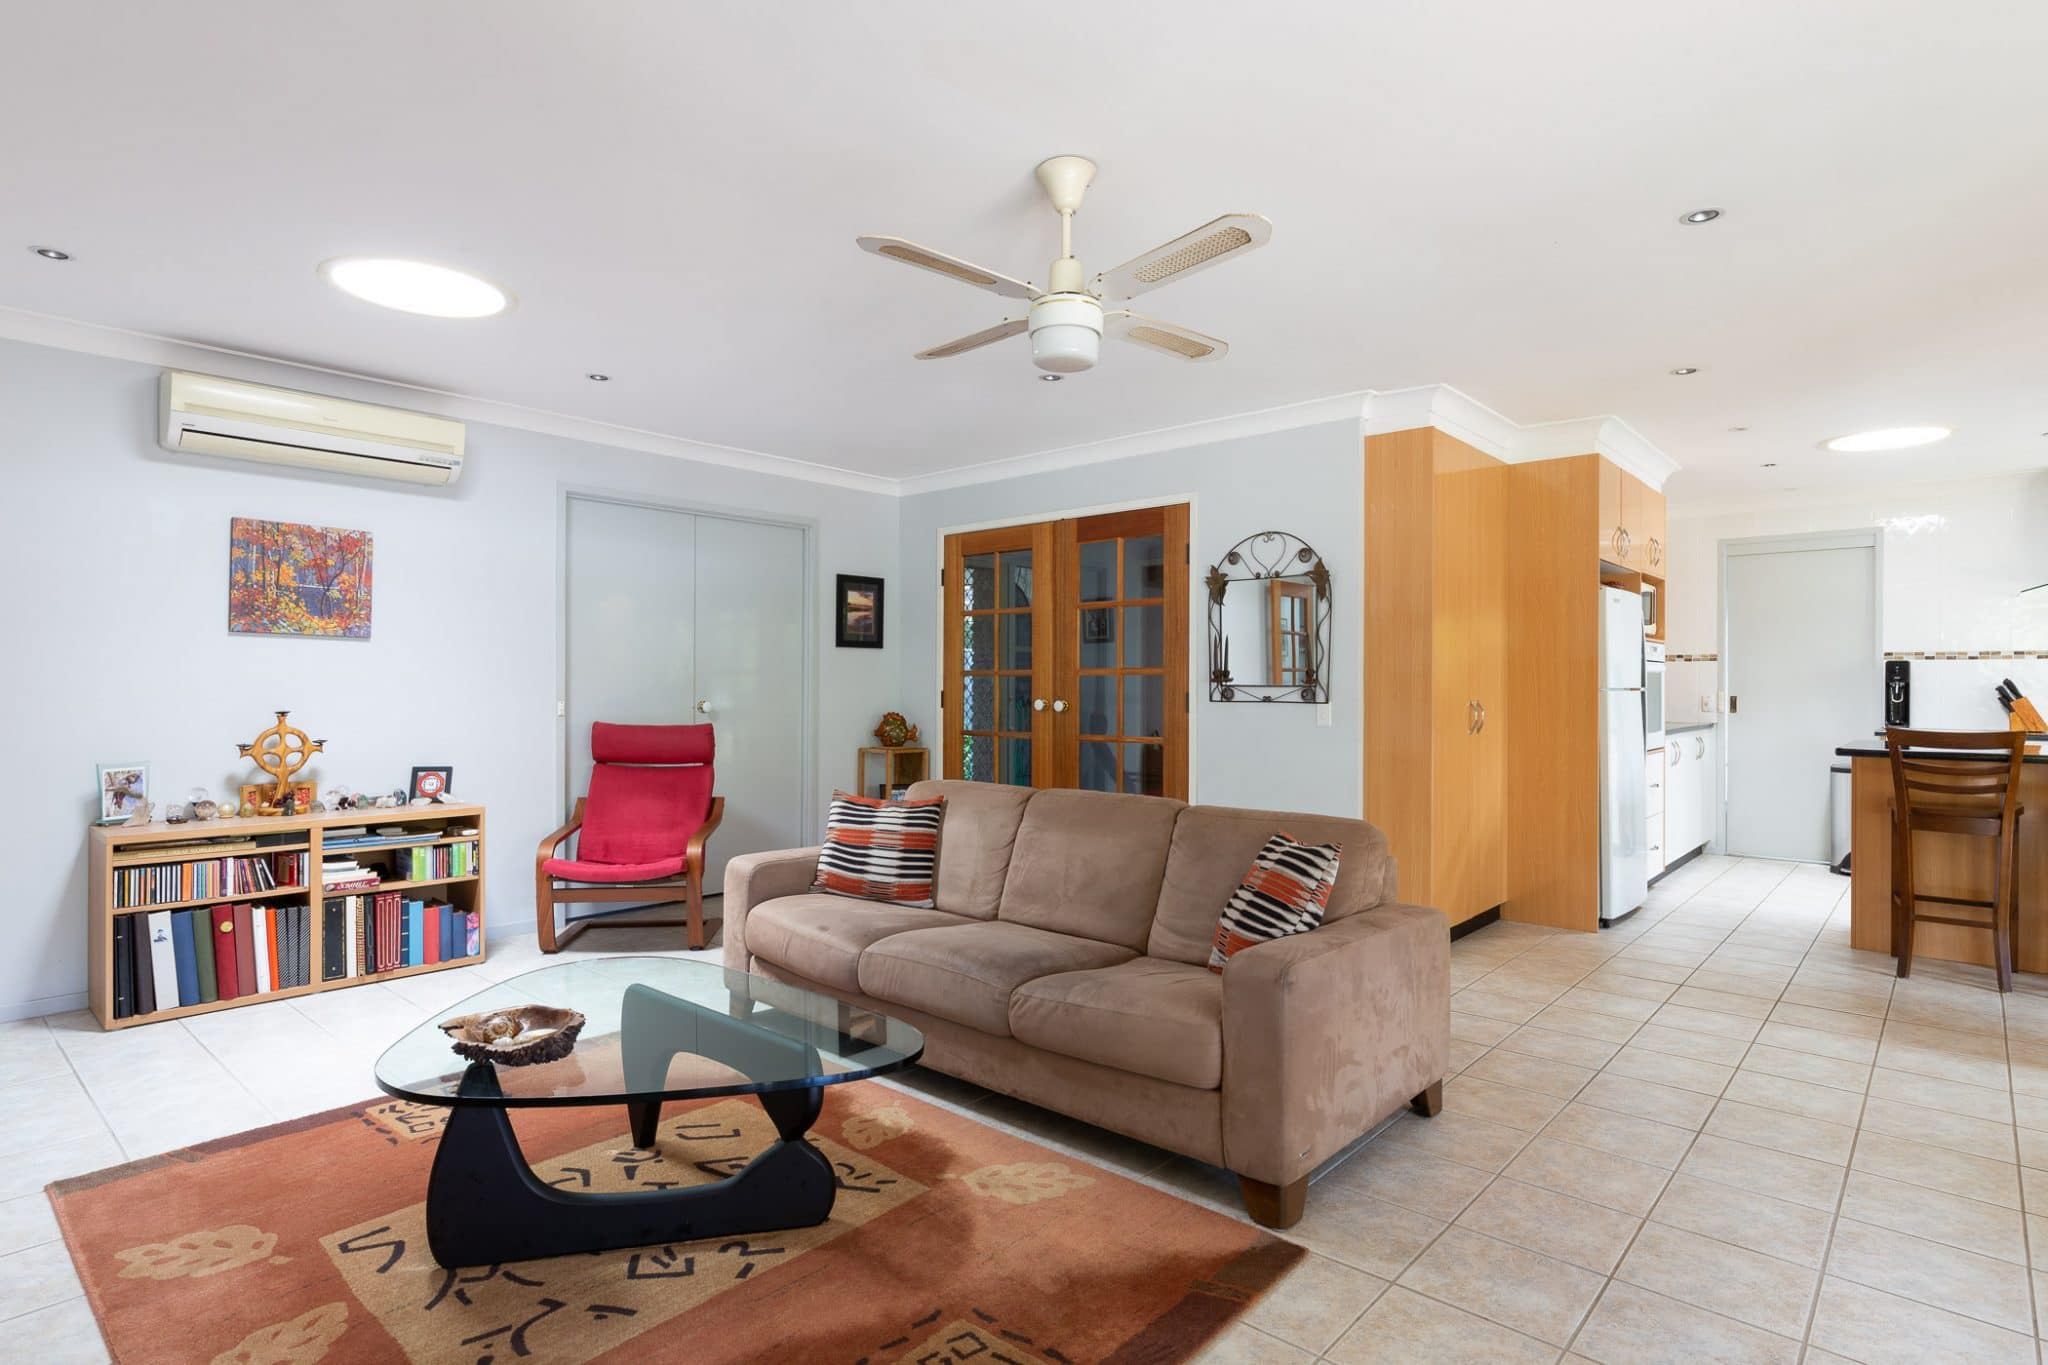 Architectural interiors and exteriors (123 of 140)